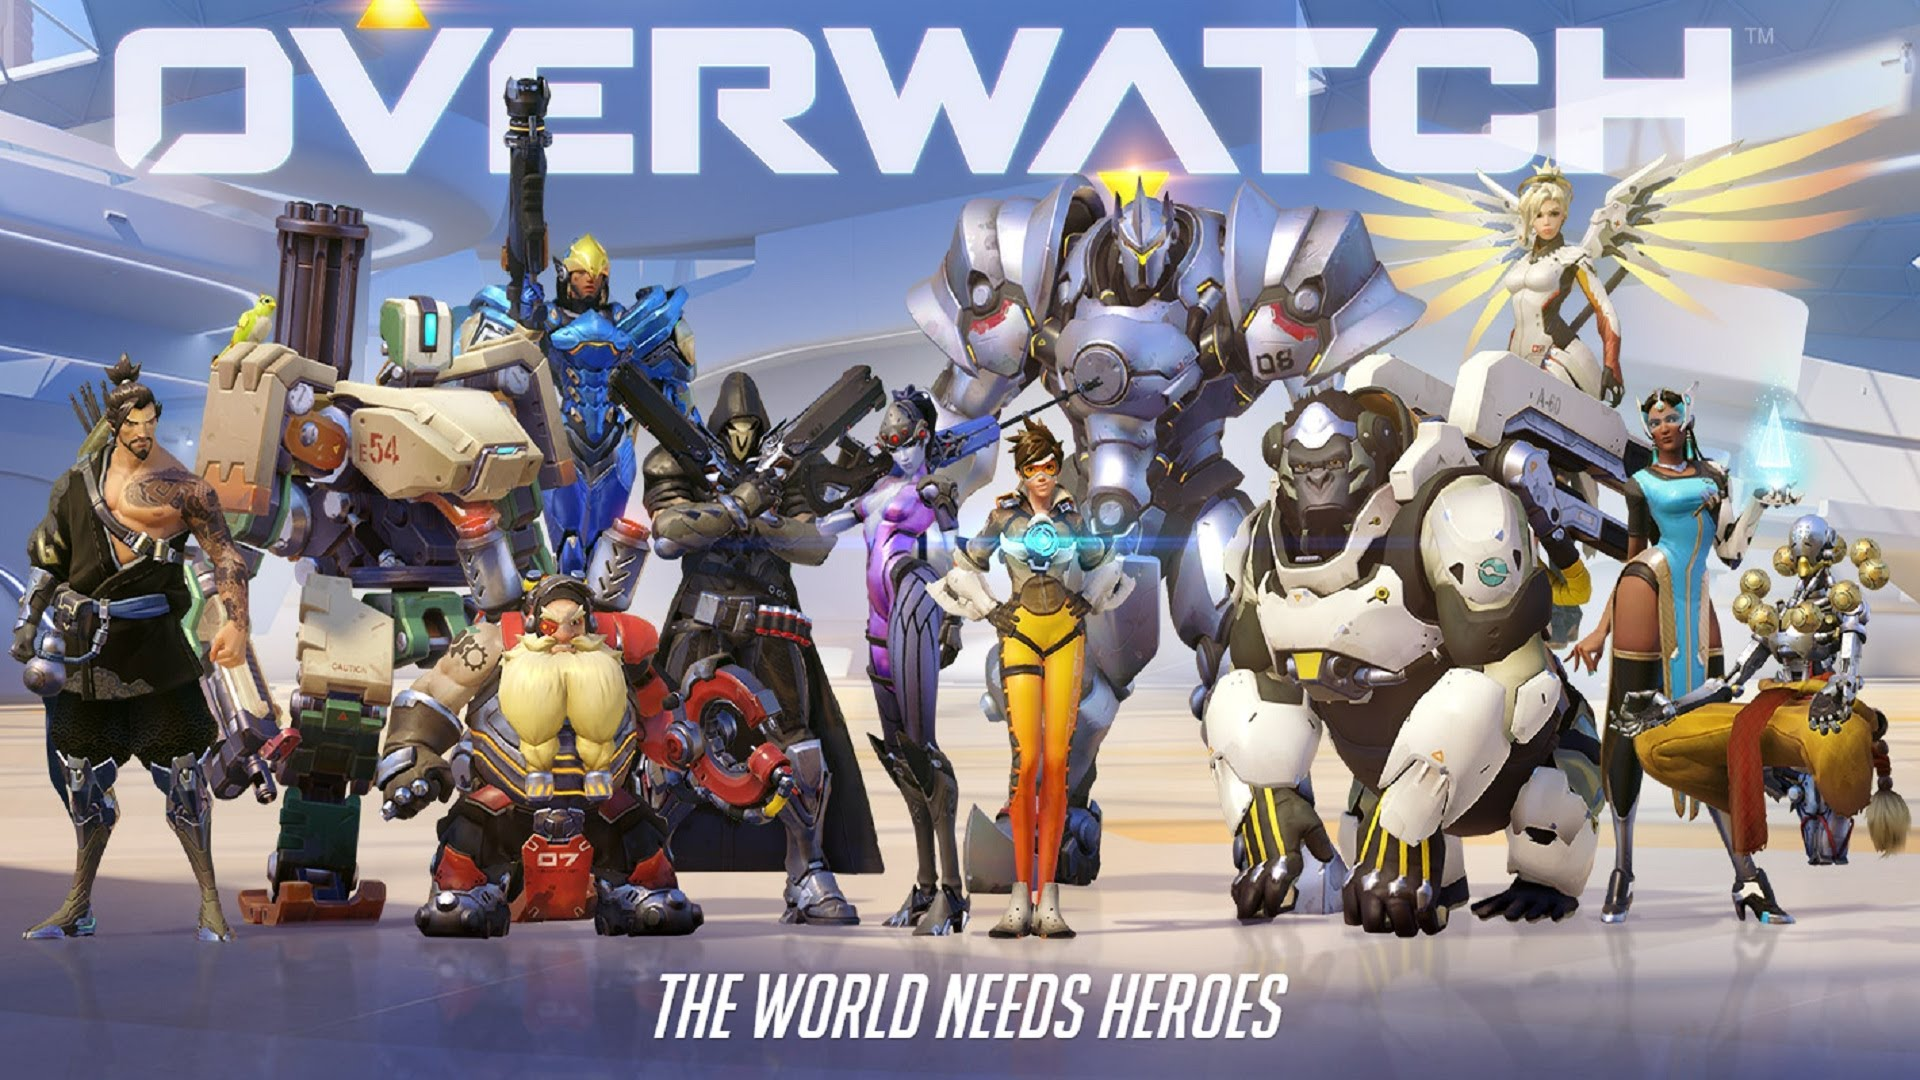 Kenny's Overwatch Review